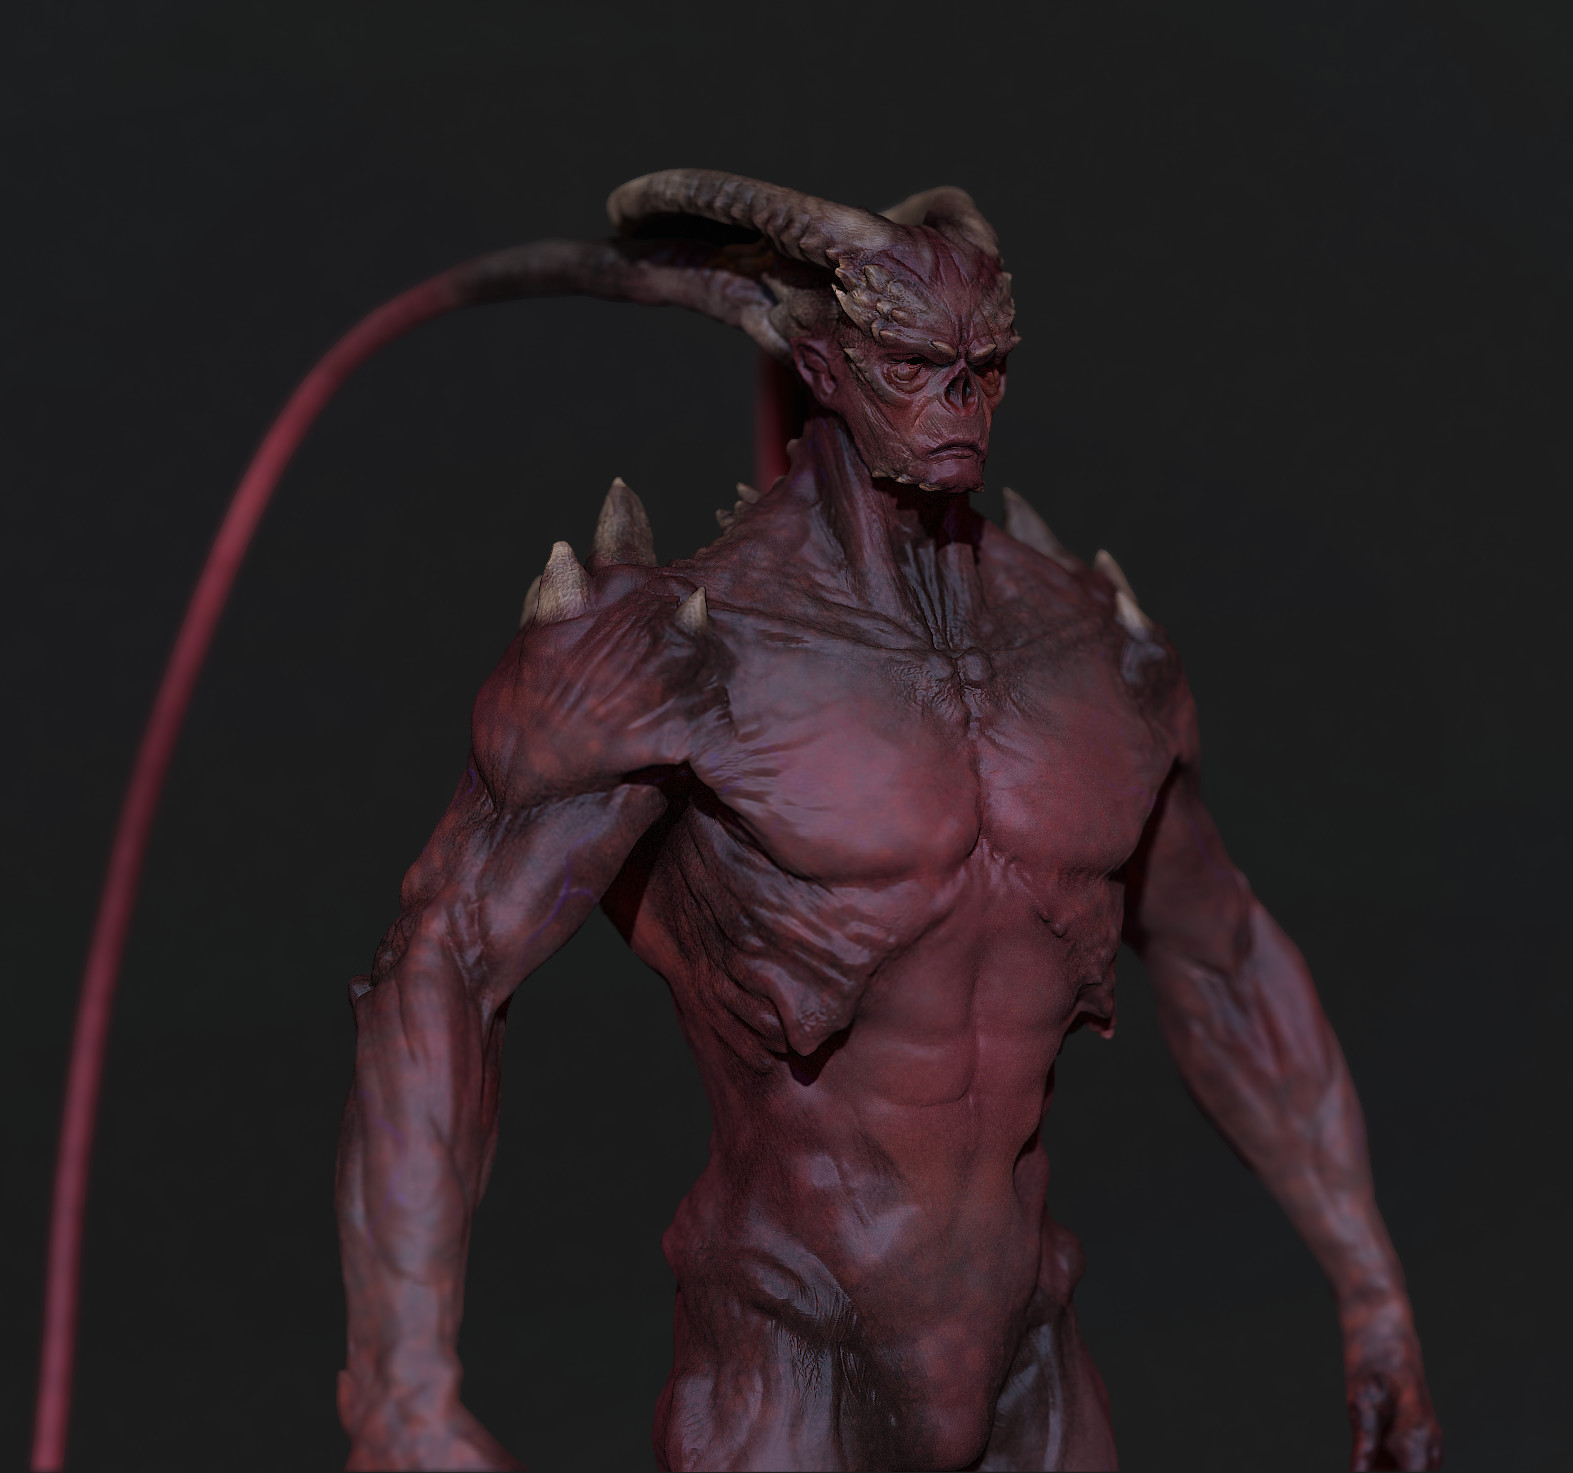 Brent minehan demon render